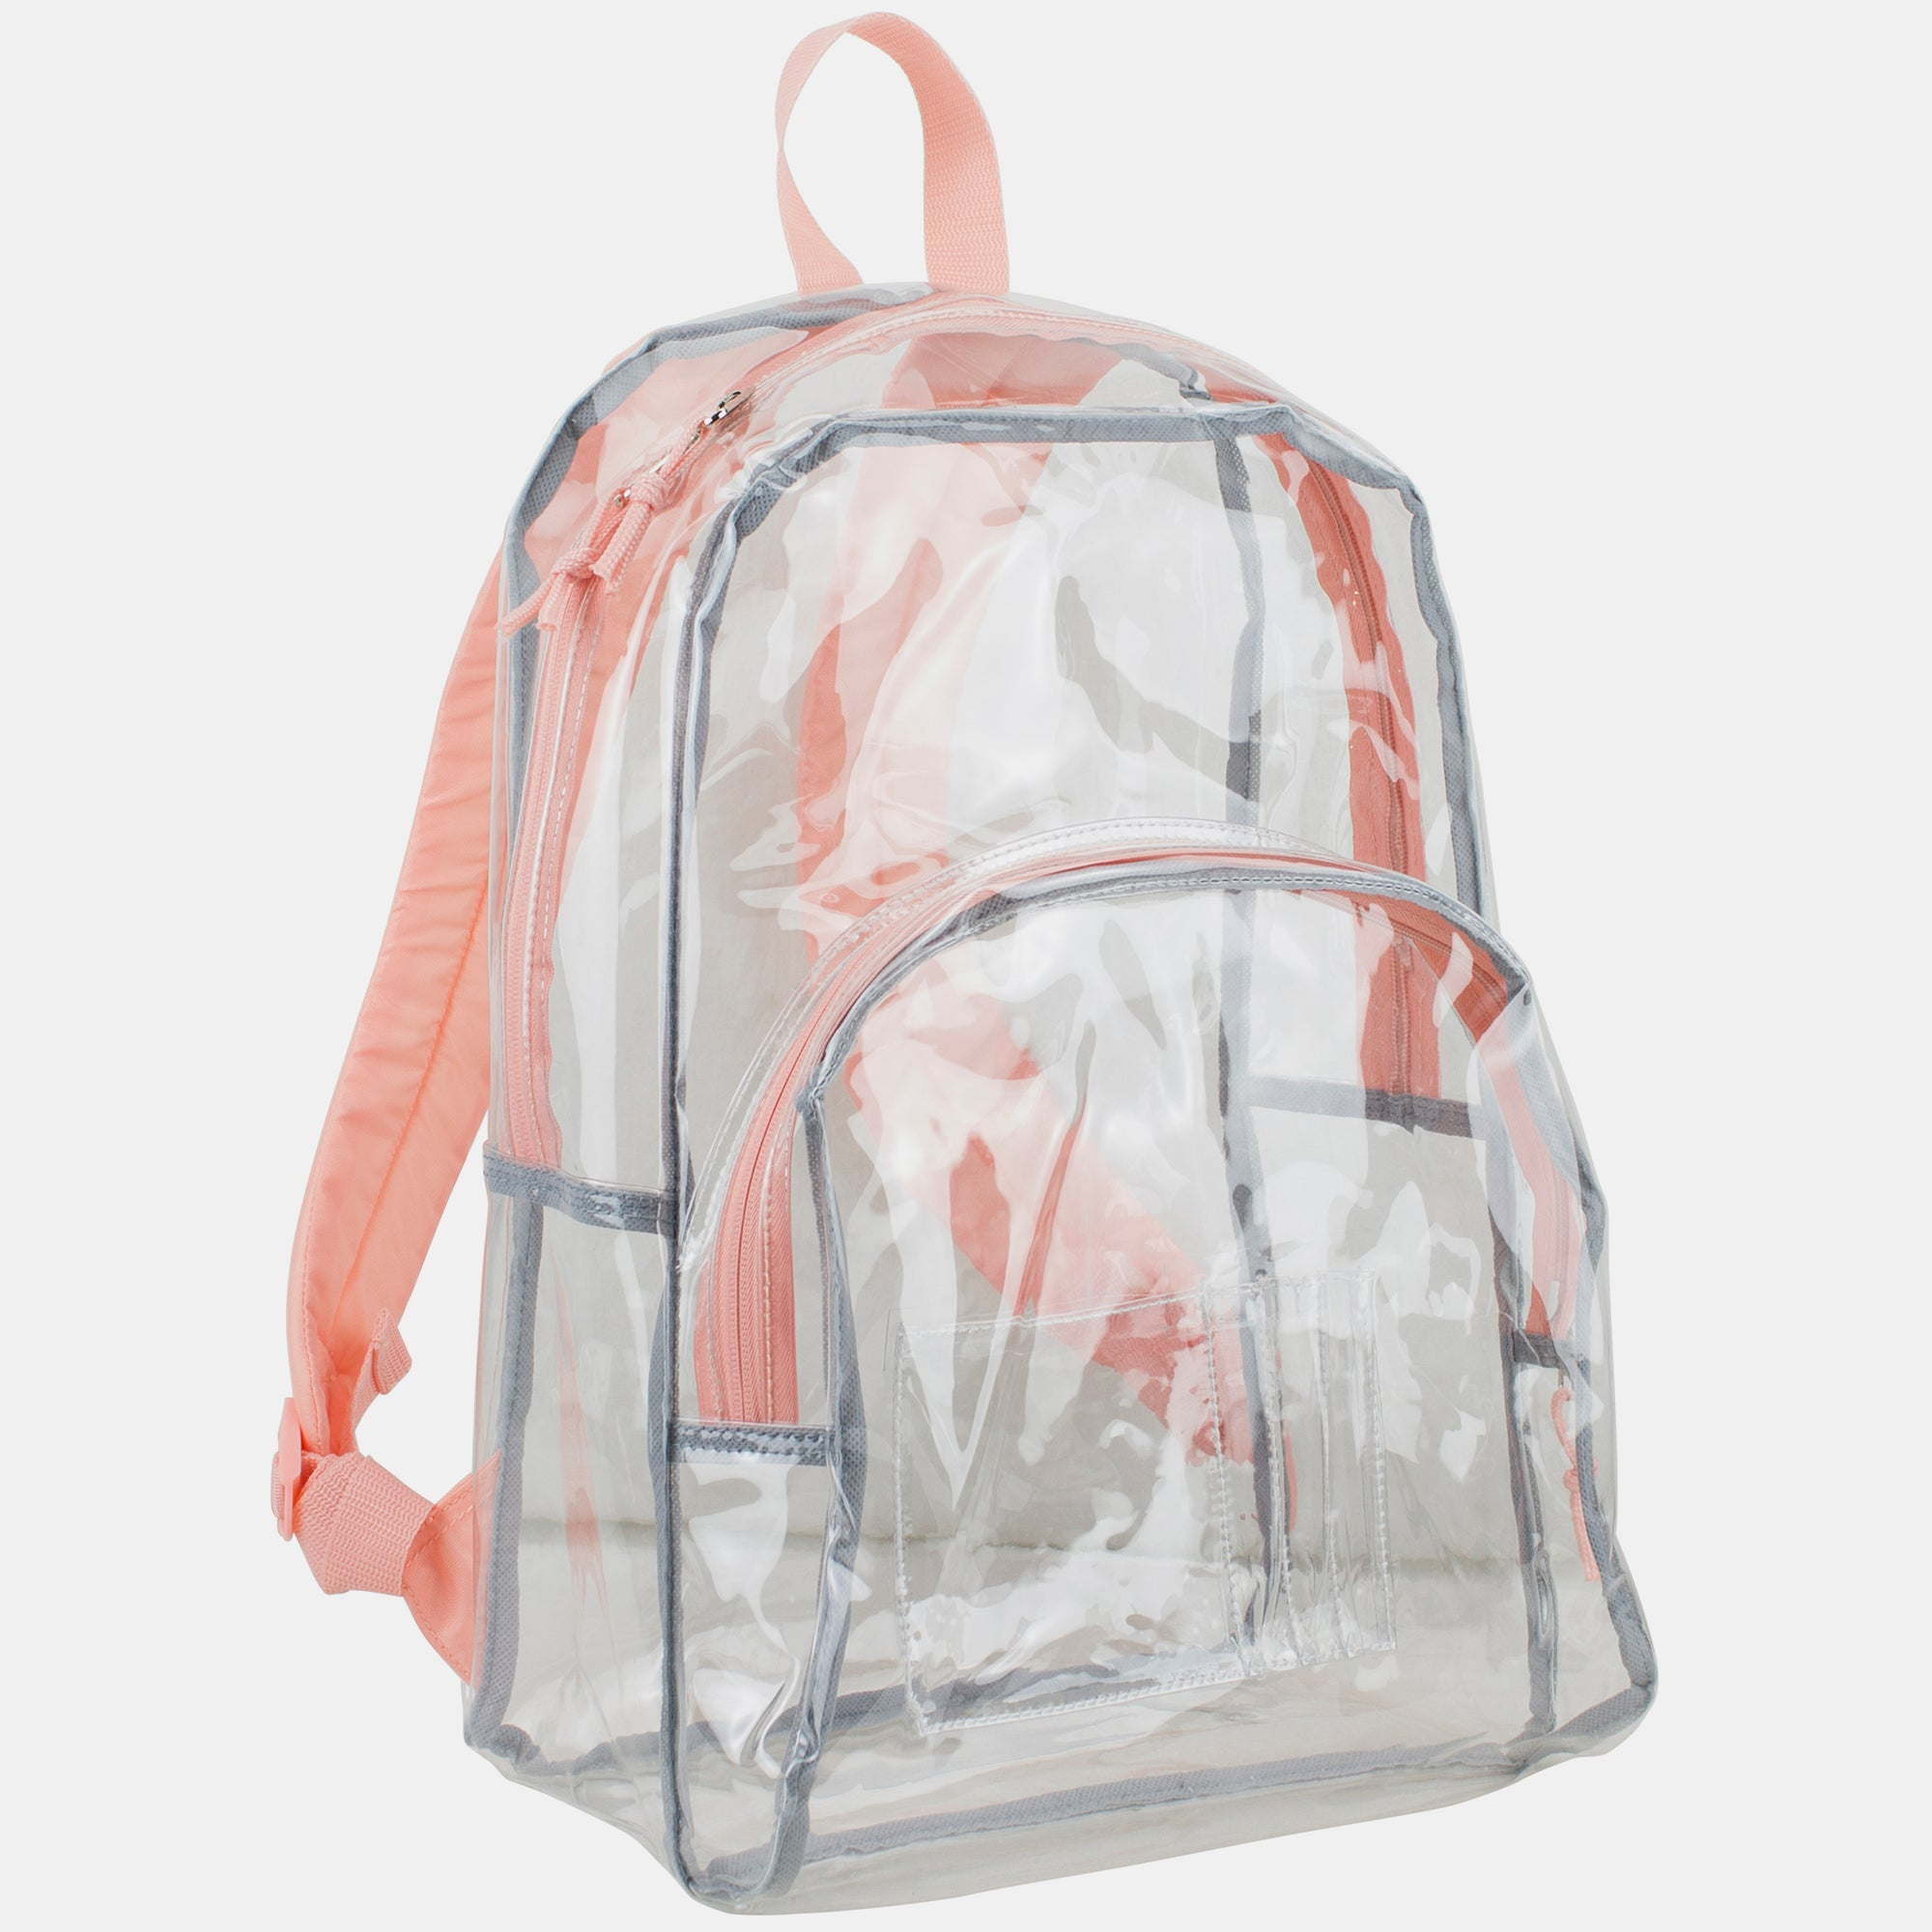 Eastsport Clear Dome Backpack with Colorful Adjustable Padded Straps